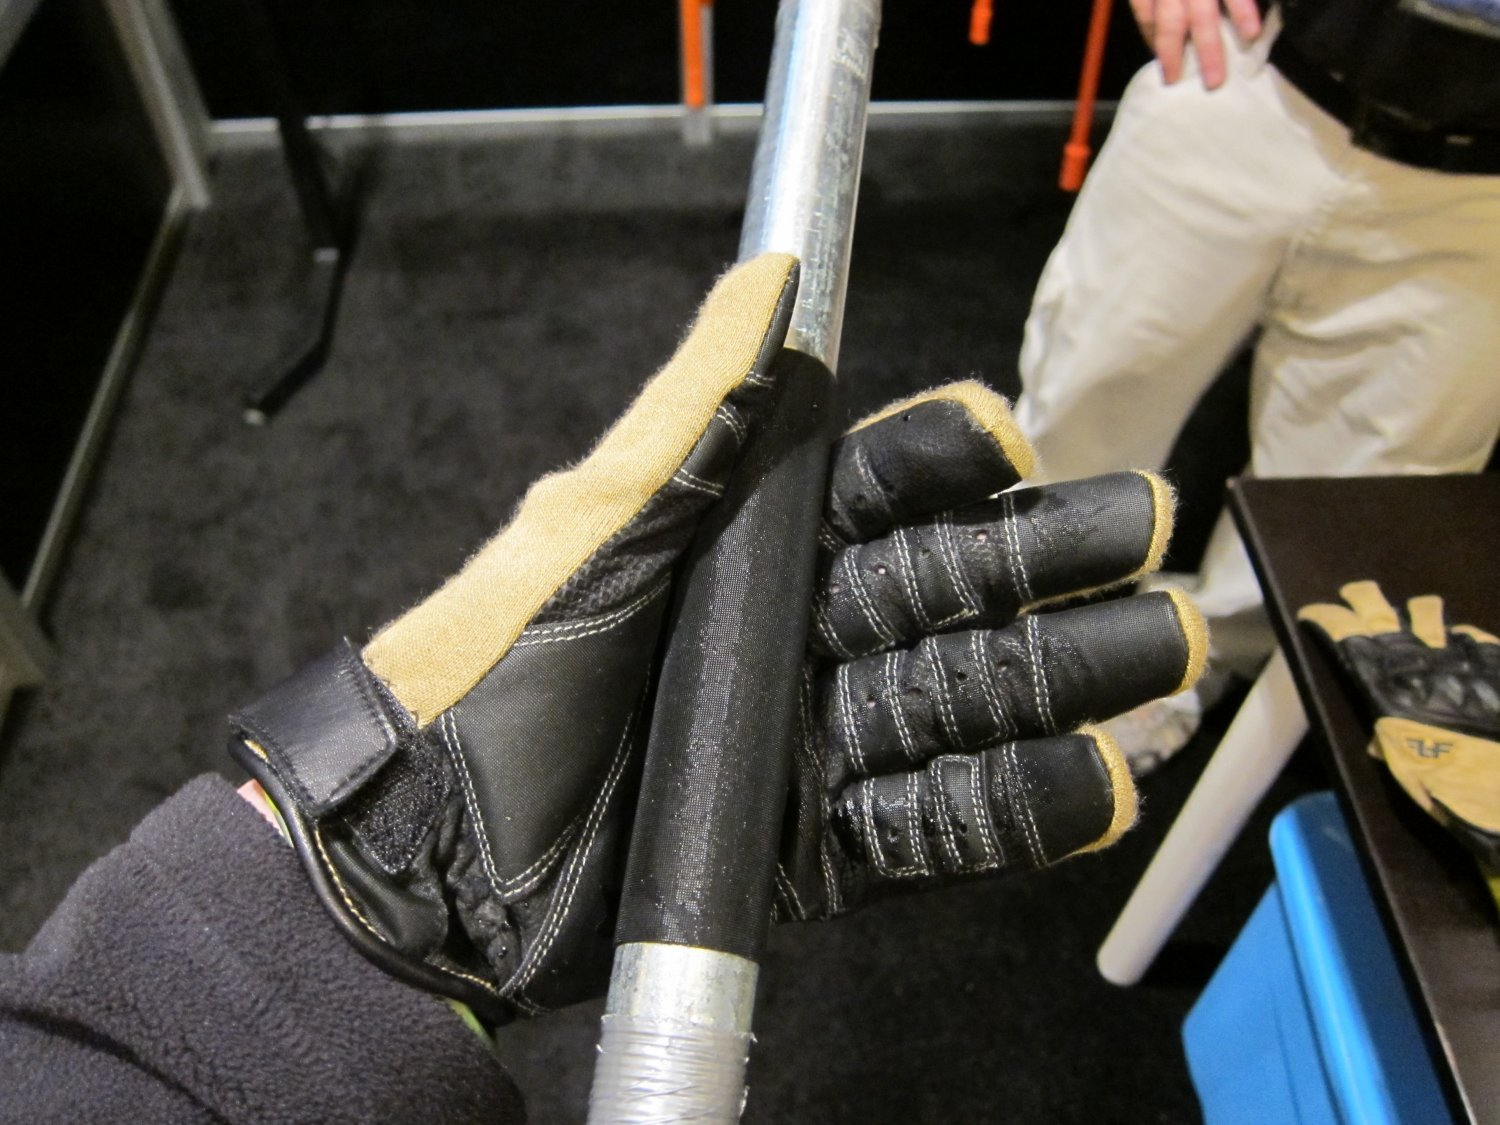 Line Of Fire (LOF) Technology Enhanced Grip System (TEGS)-Integrated Tactical Gear Displaying at SHOT Show 2012